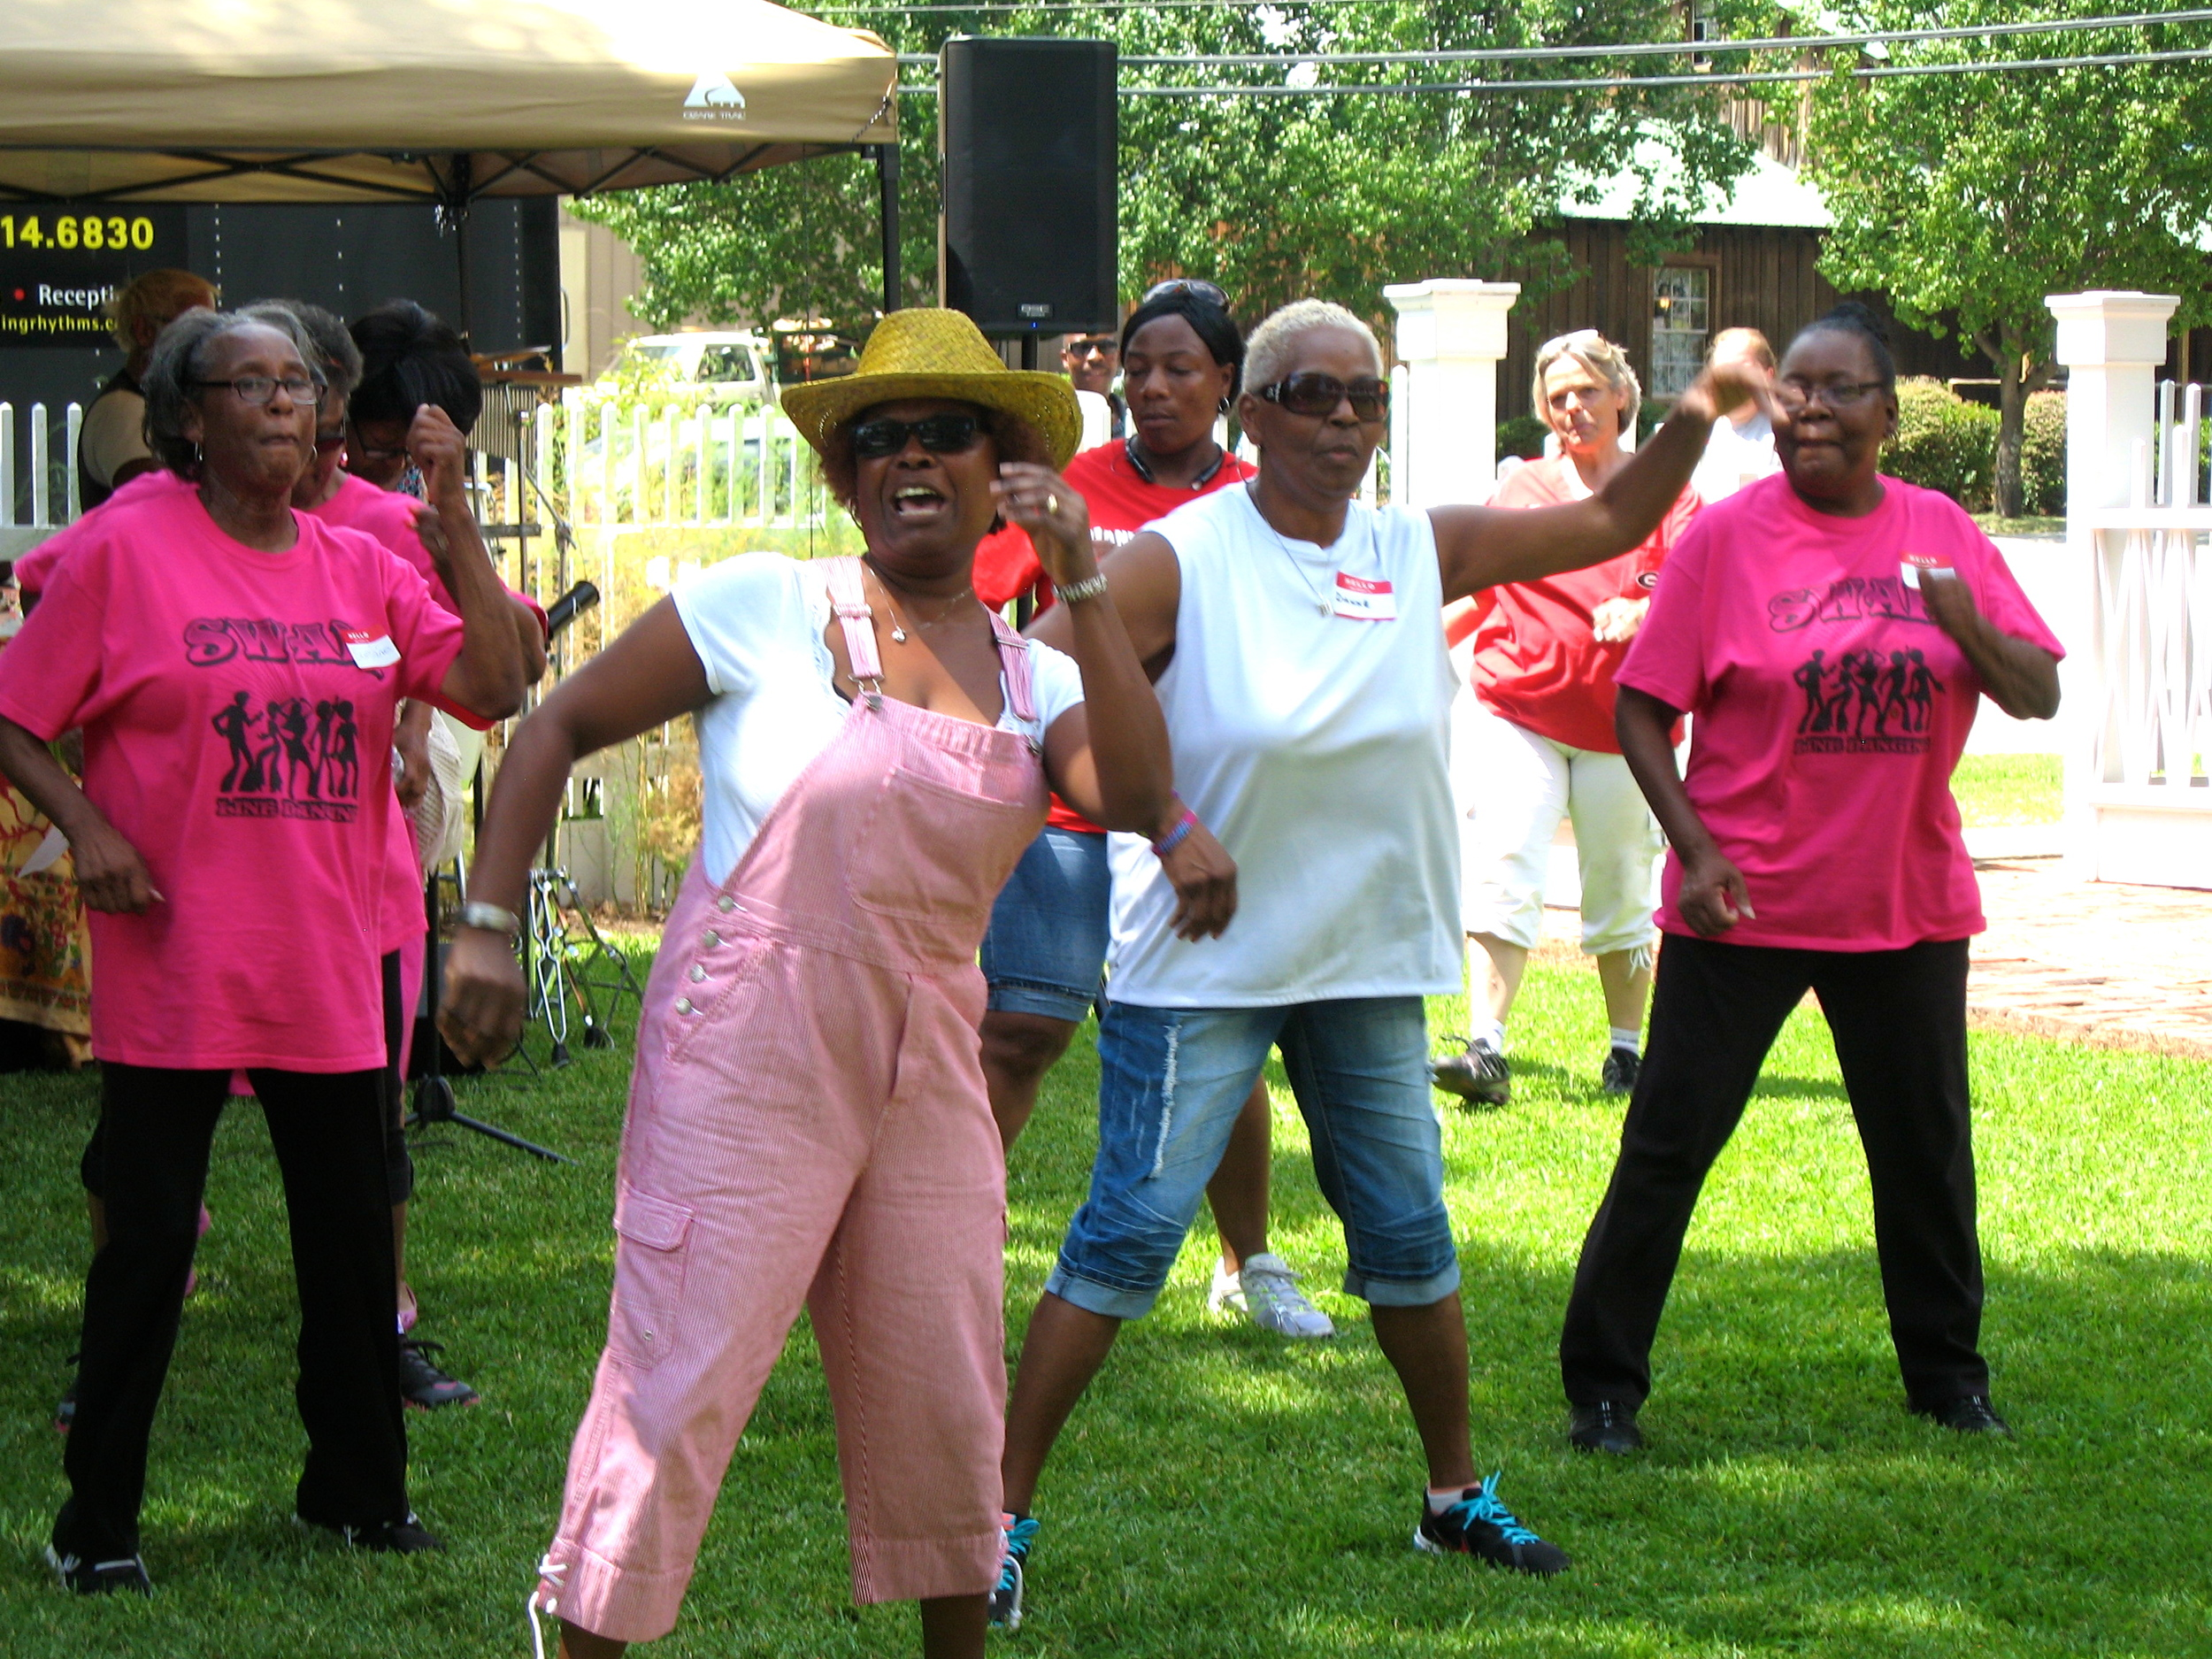 SWAH Fitness Dance Group did some mighty fine line dancing.